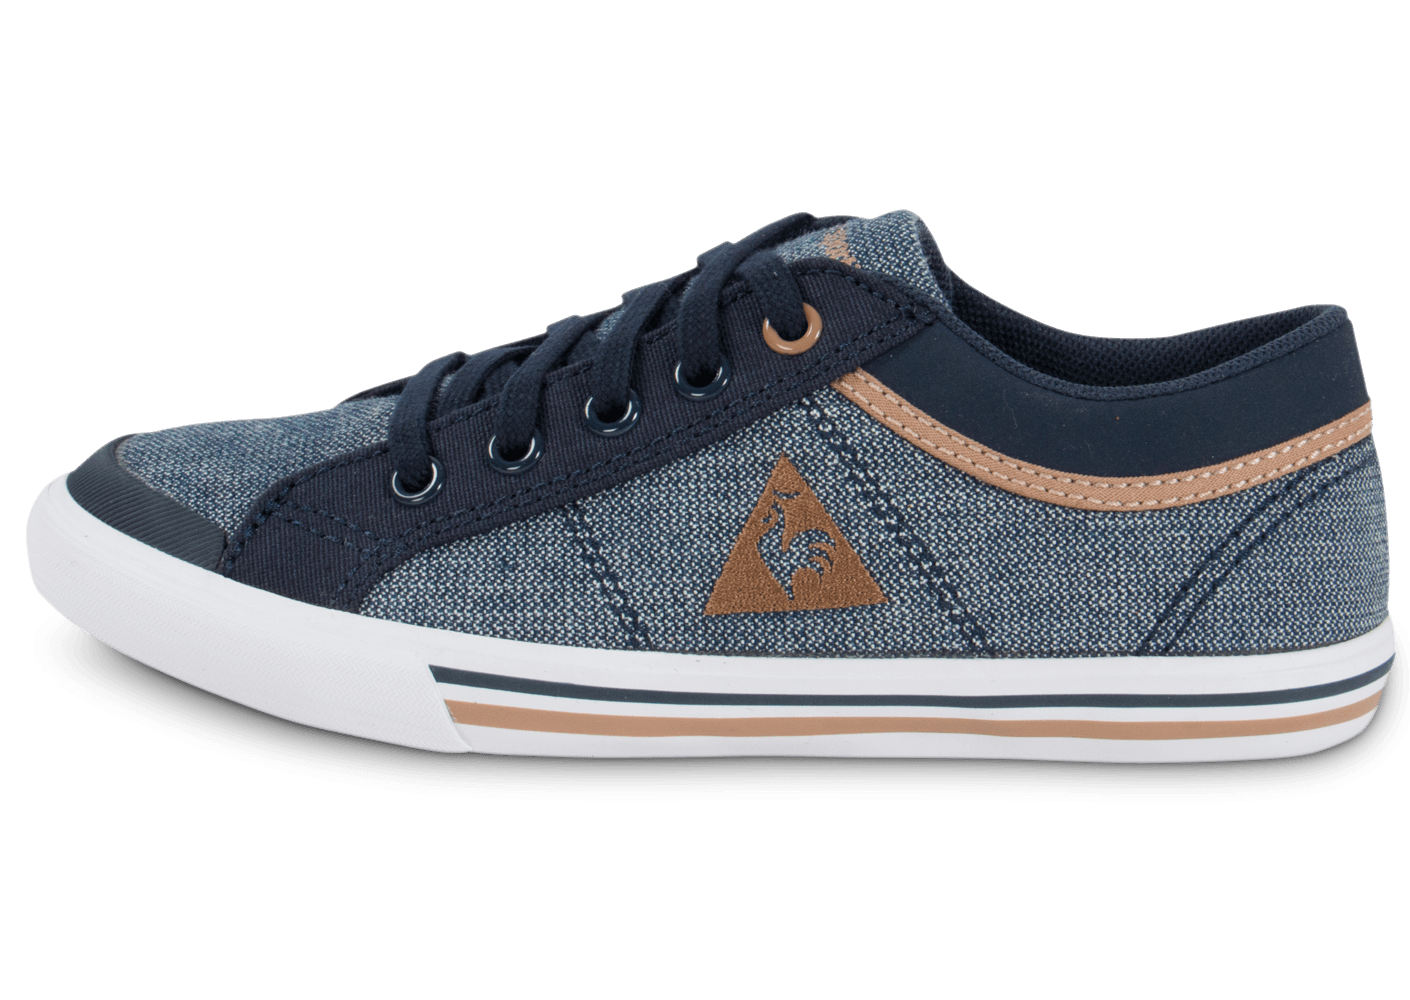 le coq sportif chaussures. Black Bedroom Furniture Sets. Home Design Ideas